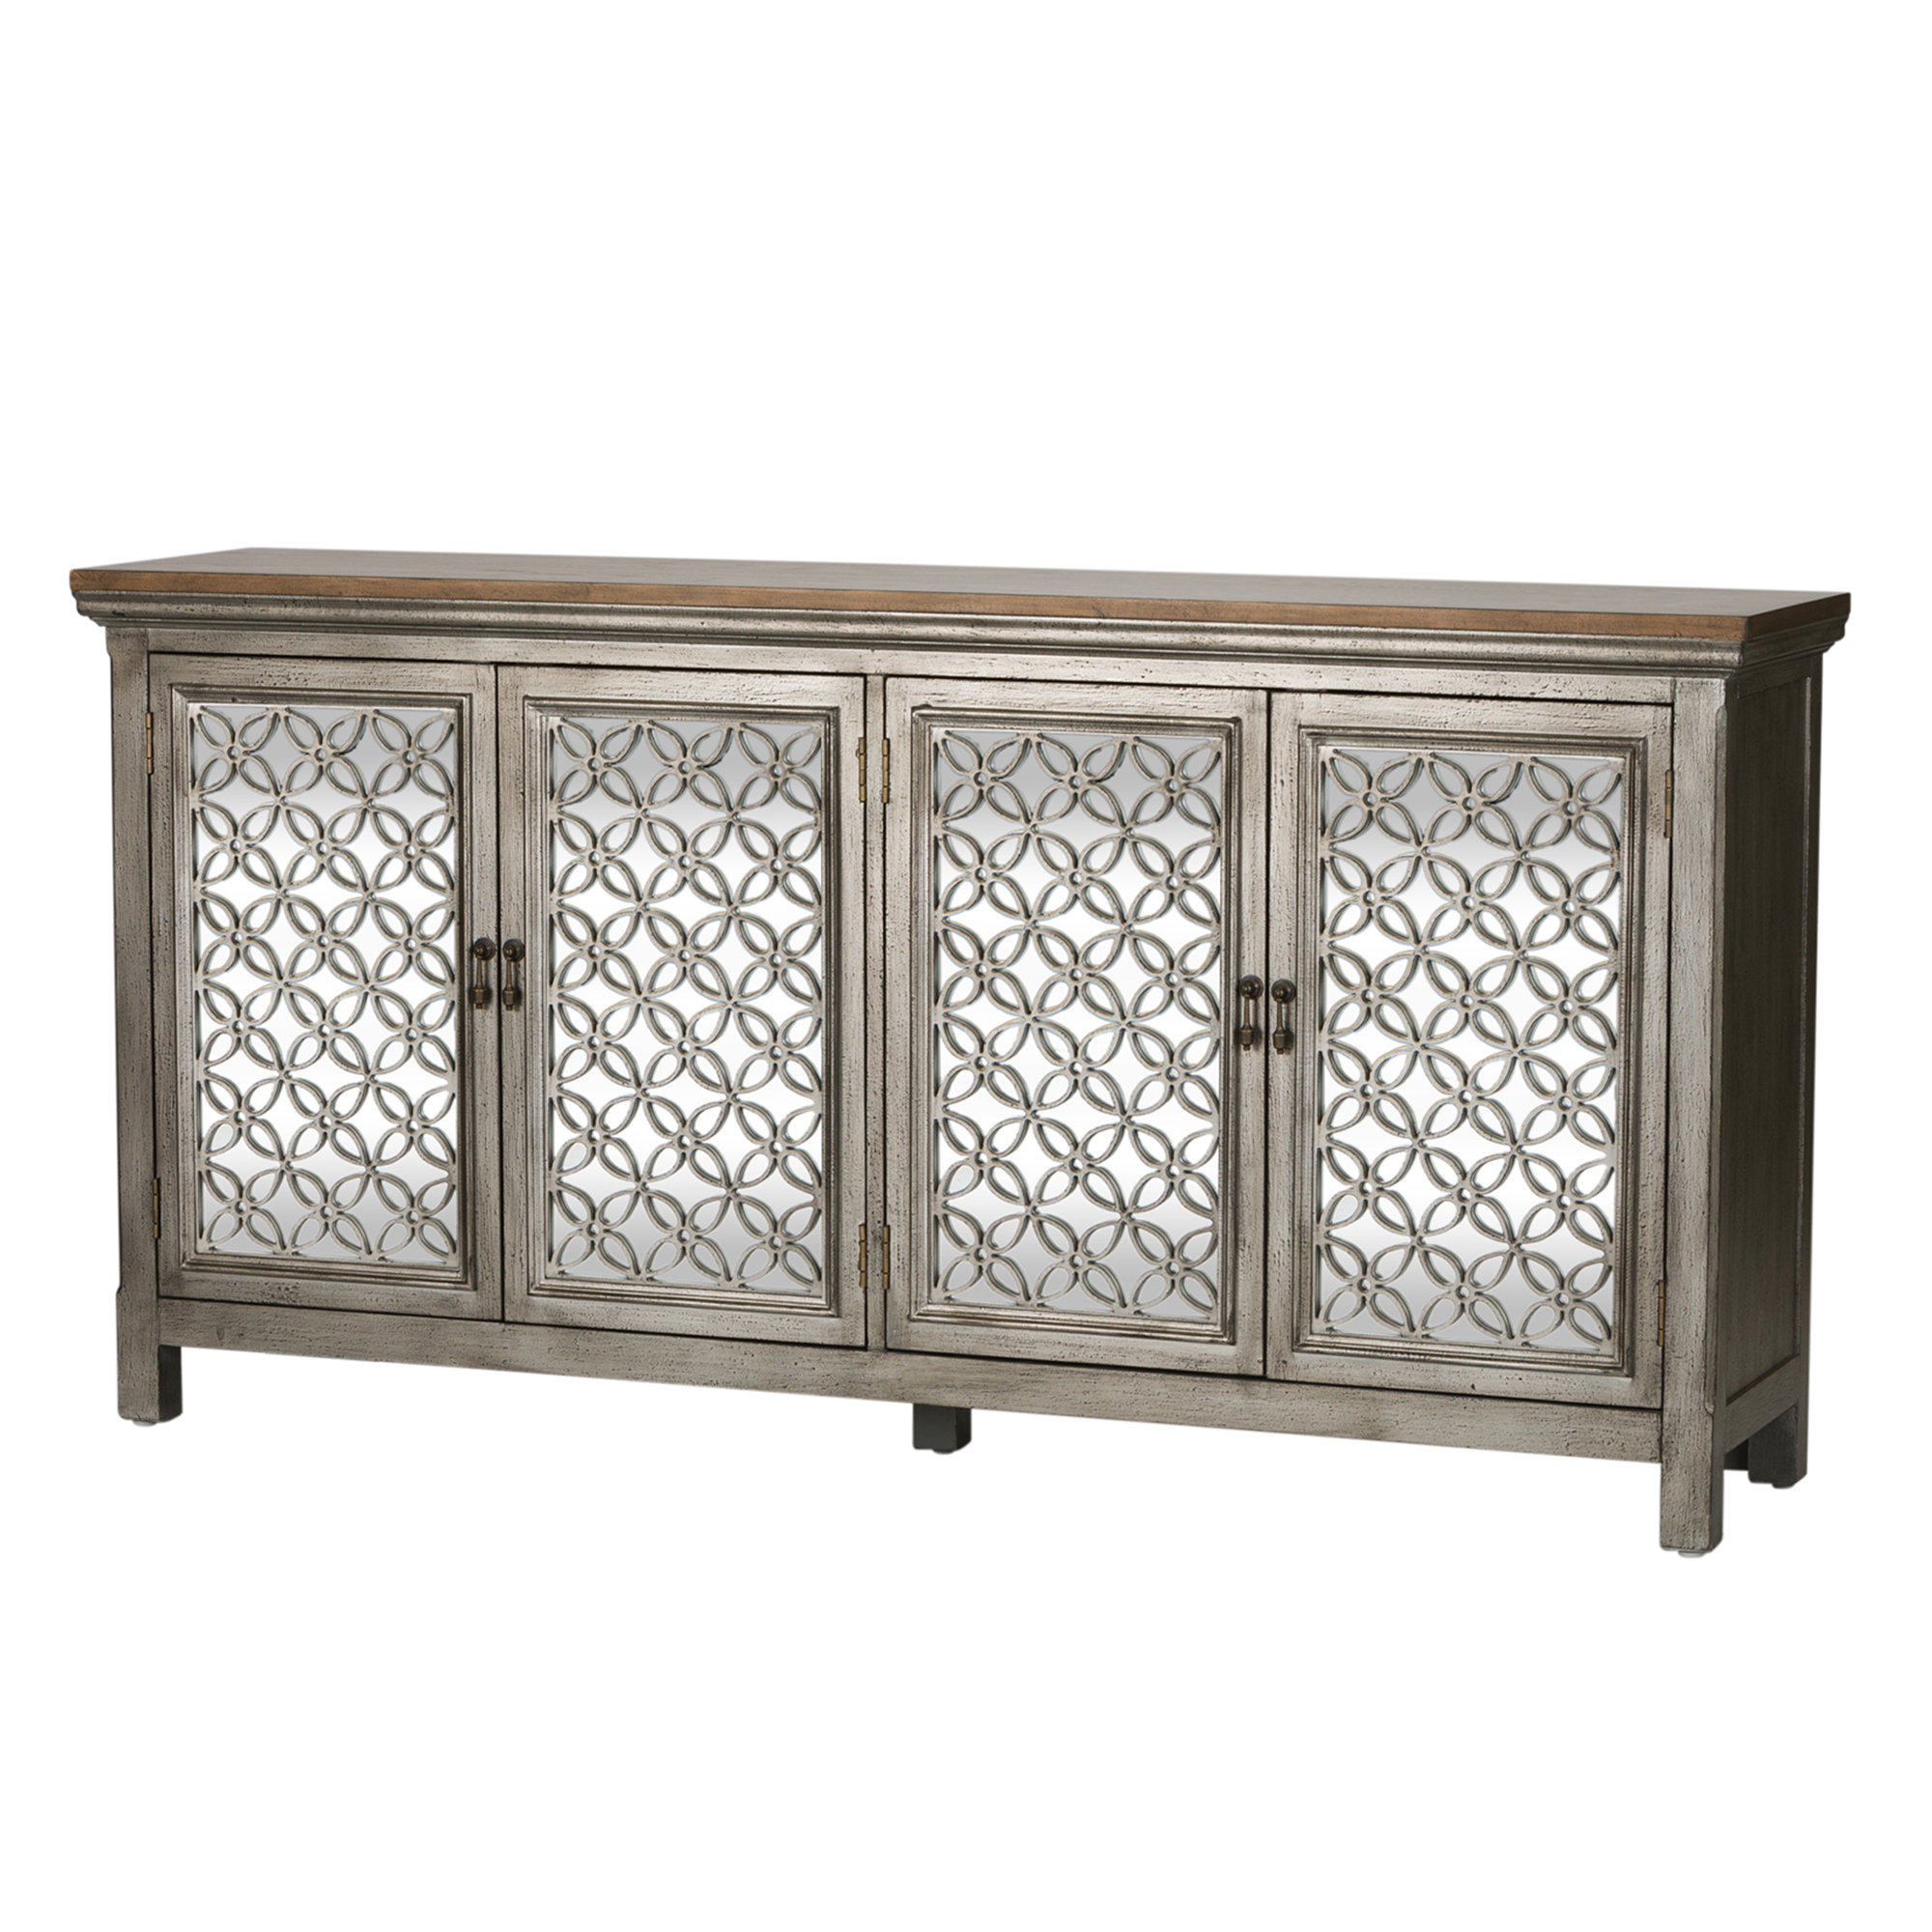 Ophelia & Co. Continuum Copper 4 Door Accent Cabinet Inside Most Current Kara 4 Door Accent Cabinets (Gallery 9 of 20)